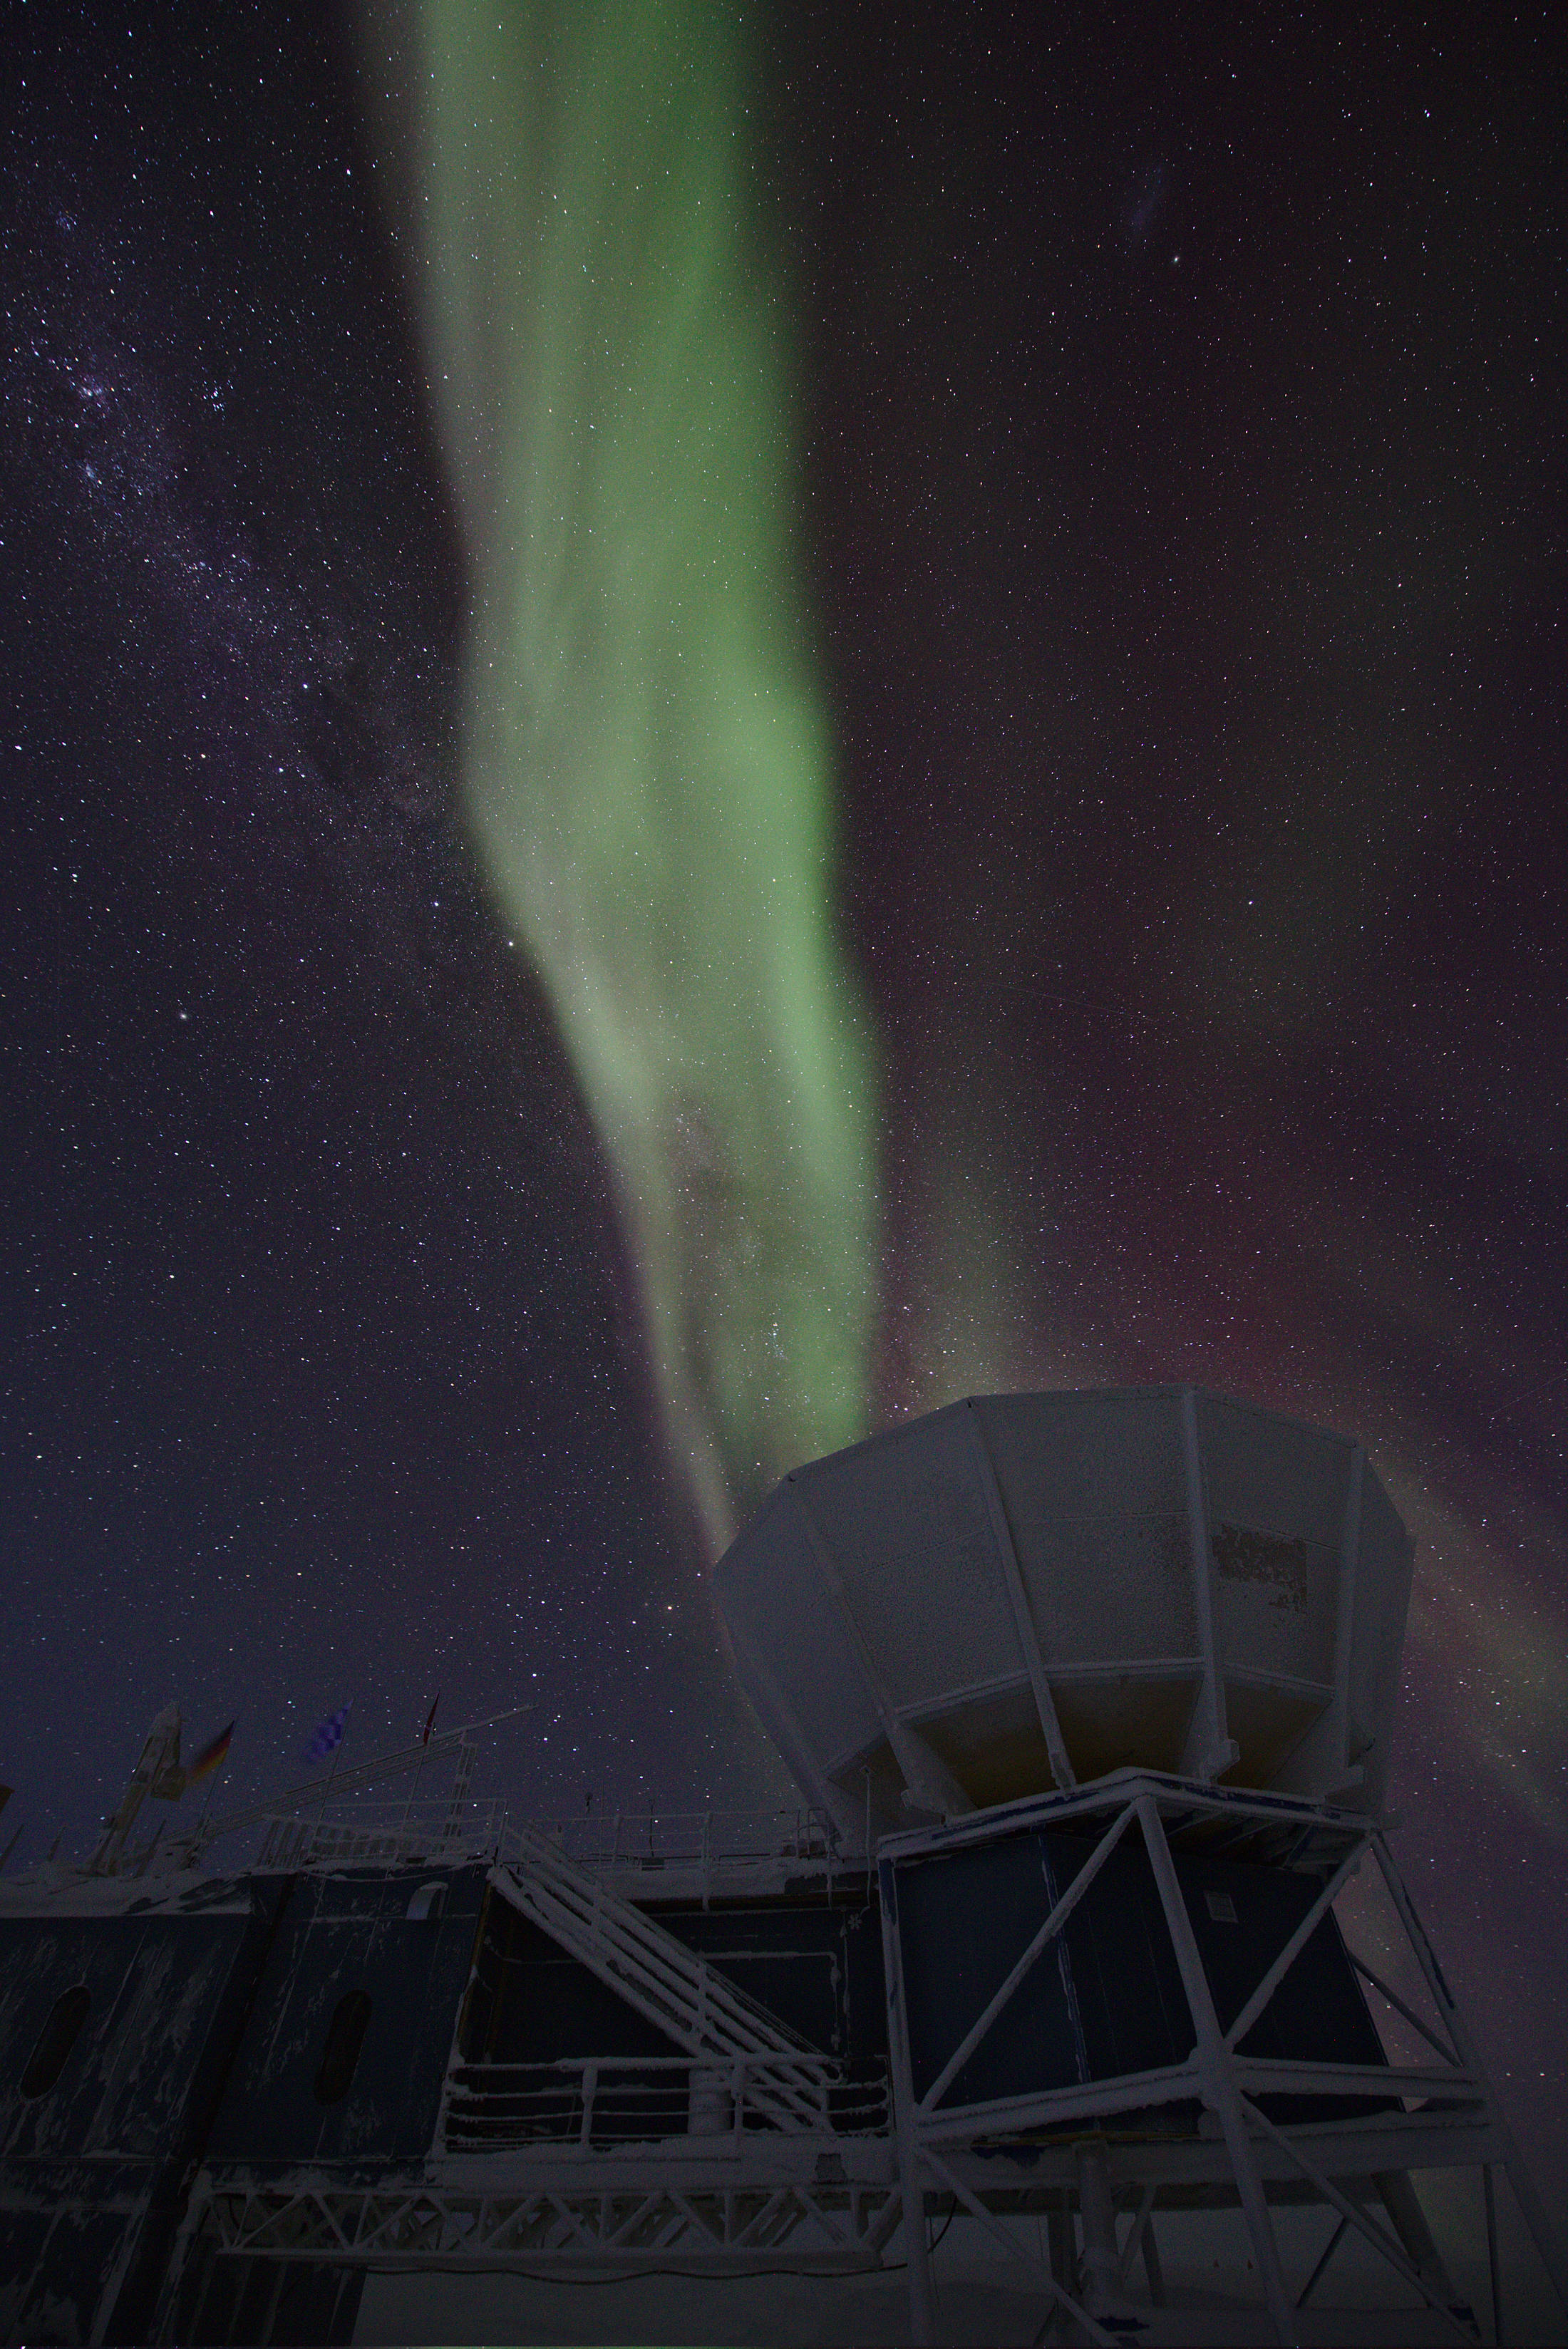 The SPUD telescope ground shield with strong auroras above it